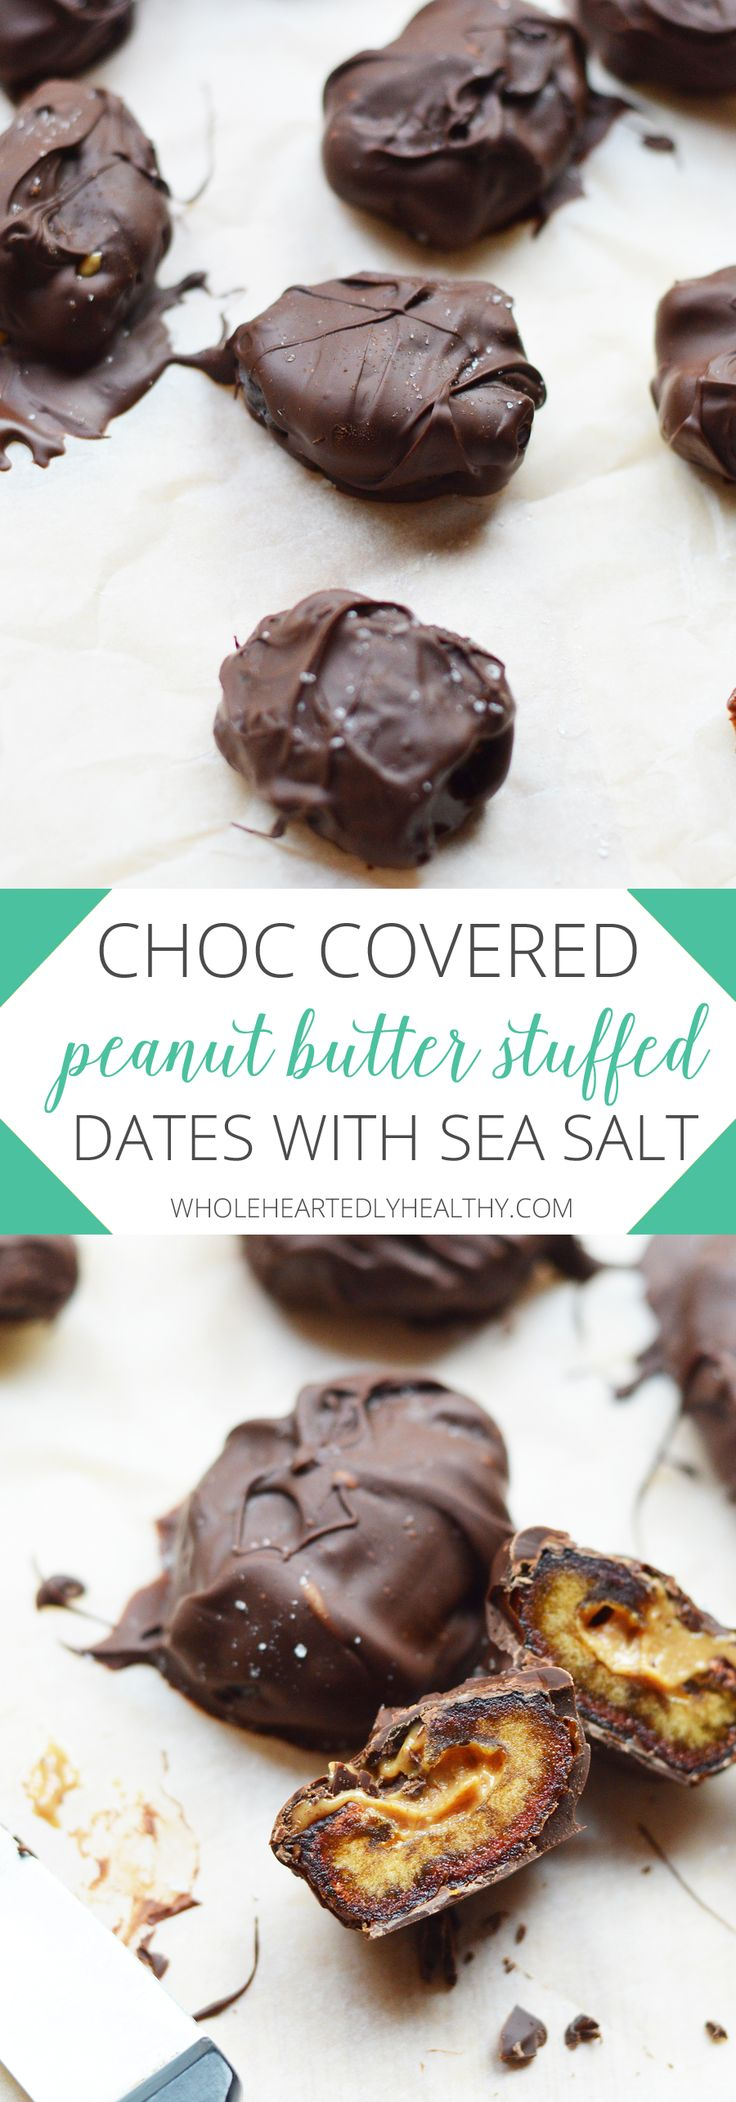 Delicious chocolate covered peanut butter stuffed dates with sea salt